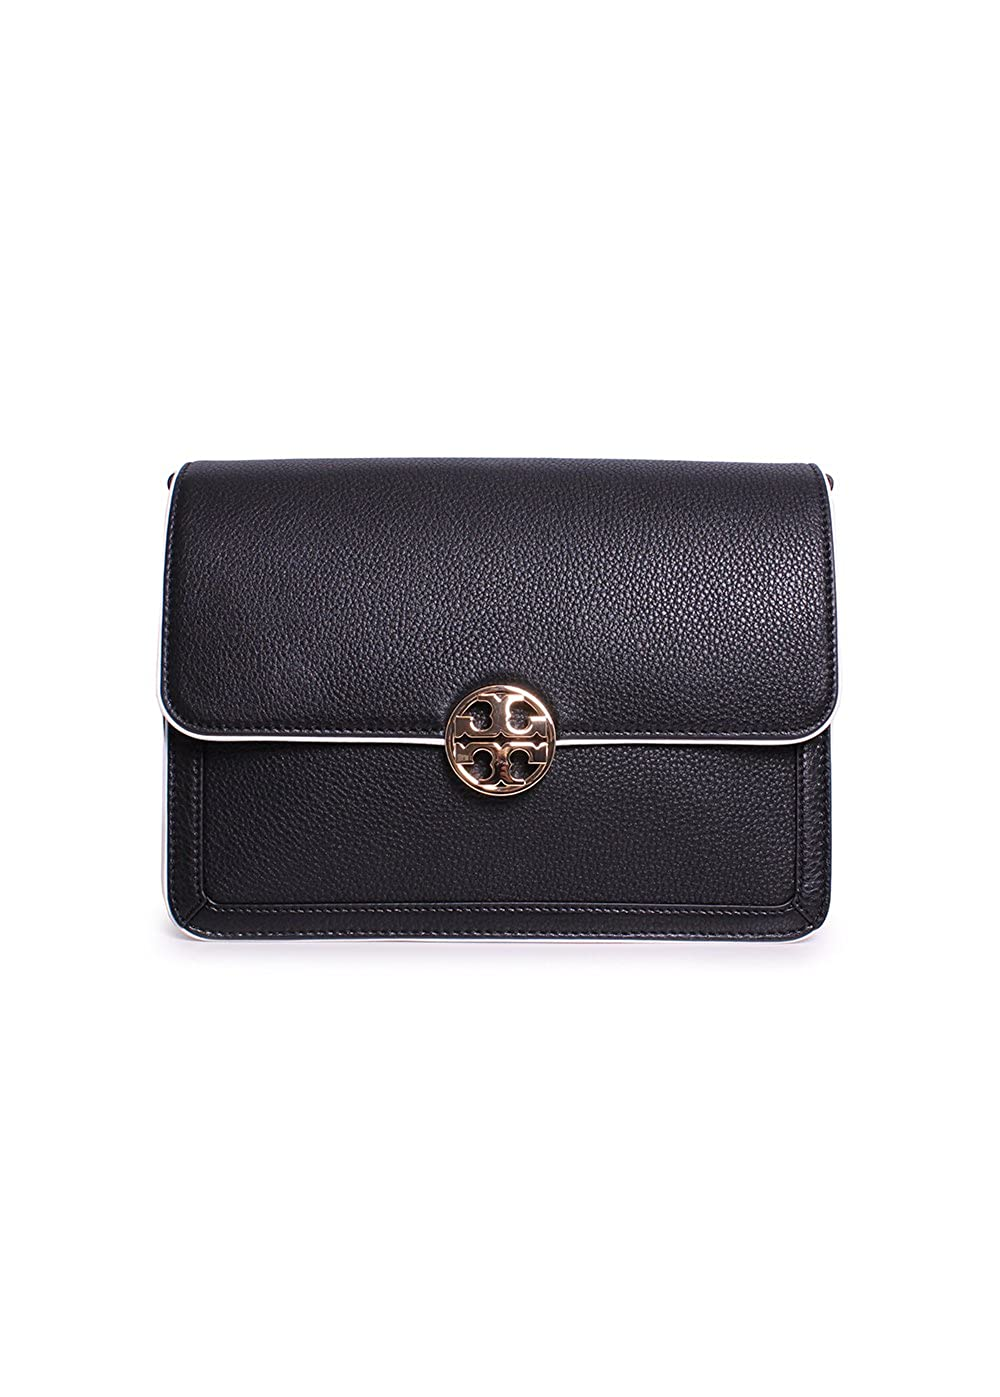 26bcc55ca6b Amazon.com  Tory Burch Duet Chain Ladies Large Leather Shoulder Bag  31332004  Watches